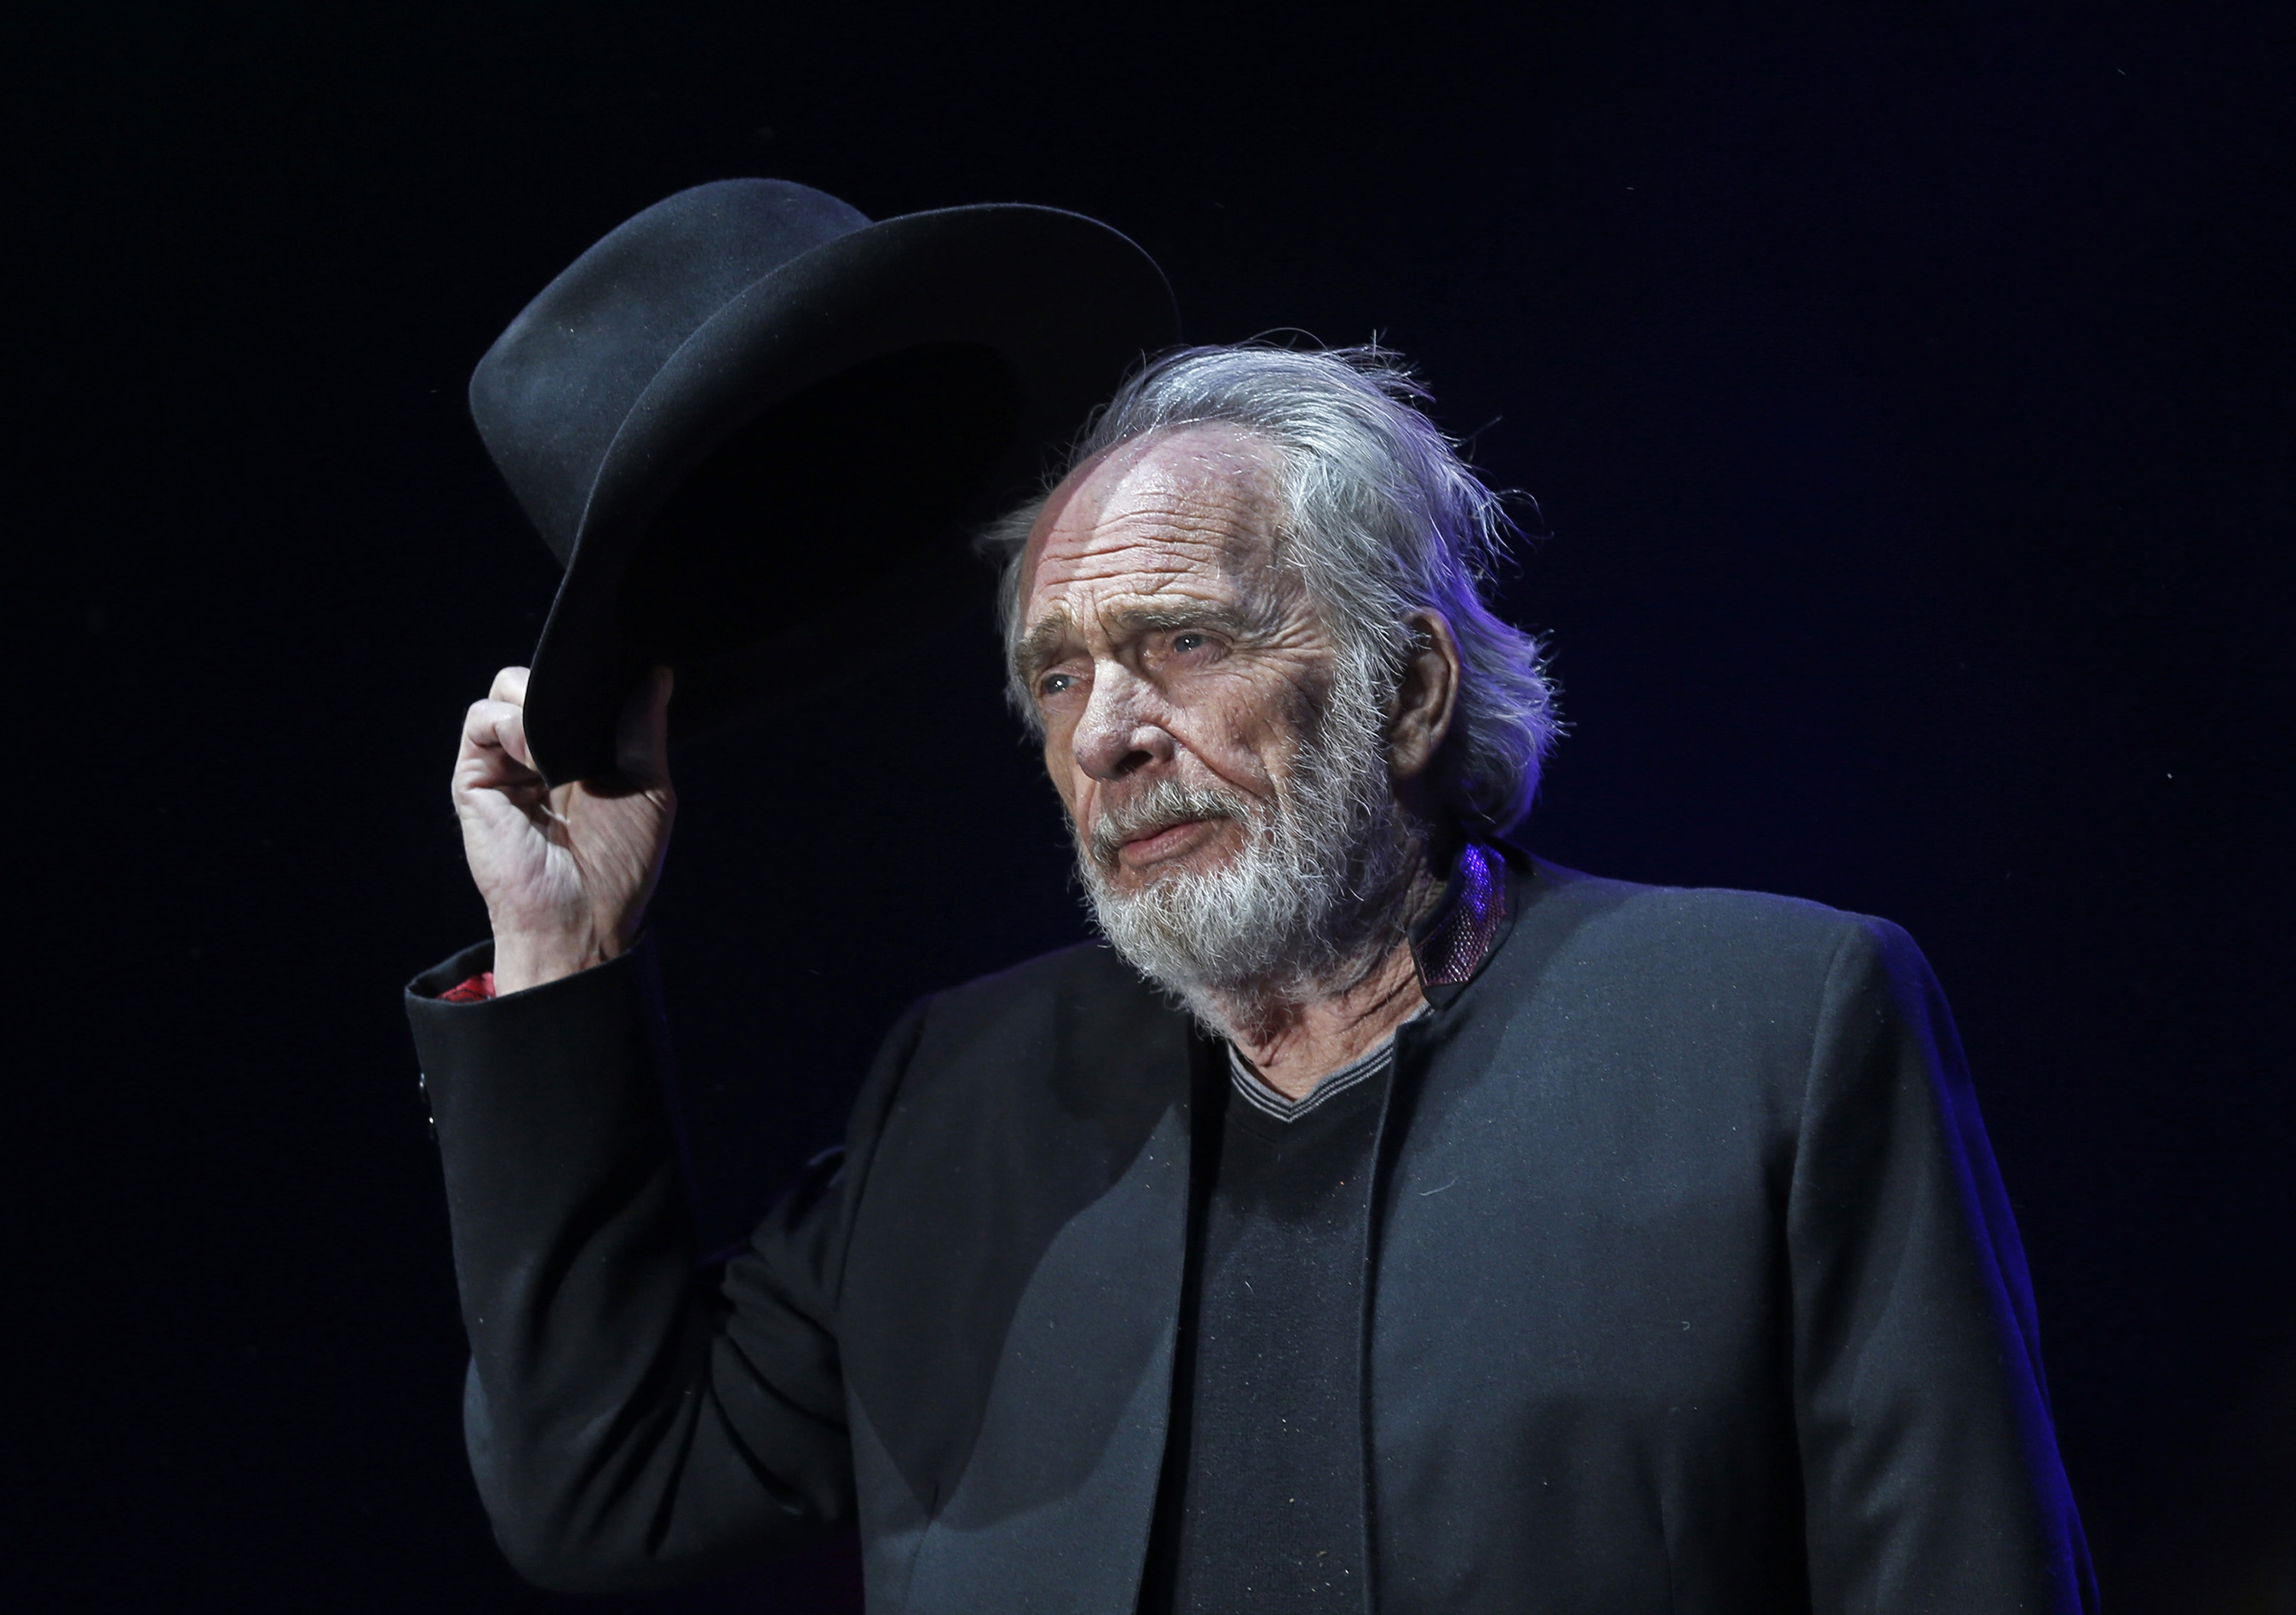 Merle Haggard tips his hat to the crowd as he begins to perform on the Palomino Stage on the first night of the sold-out three-day Stagecoach Country Music Festival at the Empire Polo Club Friday, April 24, 2015 in Indio, Calif. Haggard died on April 5, 2016, on his birthday. He was 79. (Allen J. Schaben/Los Angeles Times/TNS)